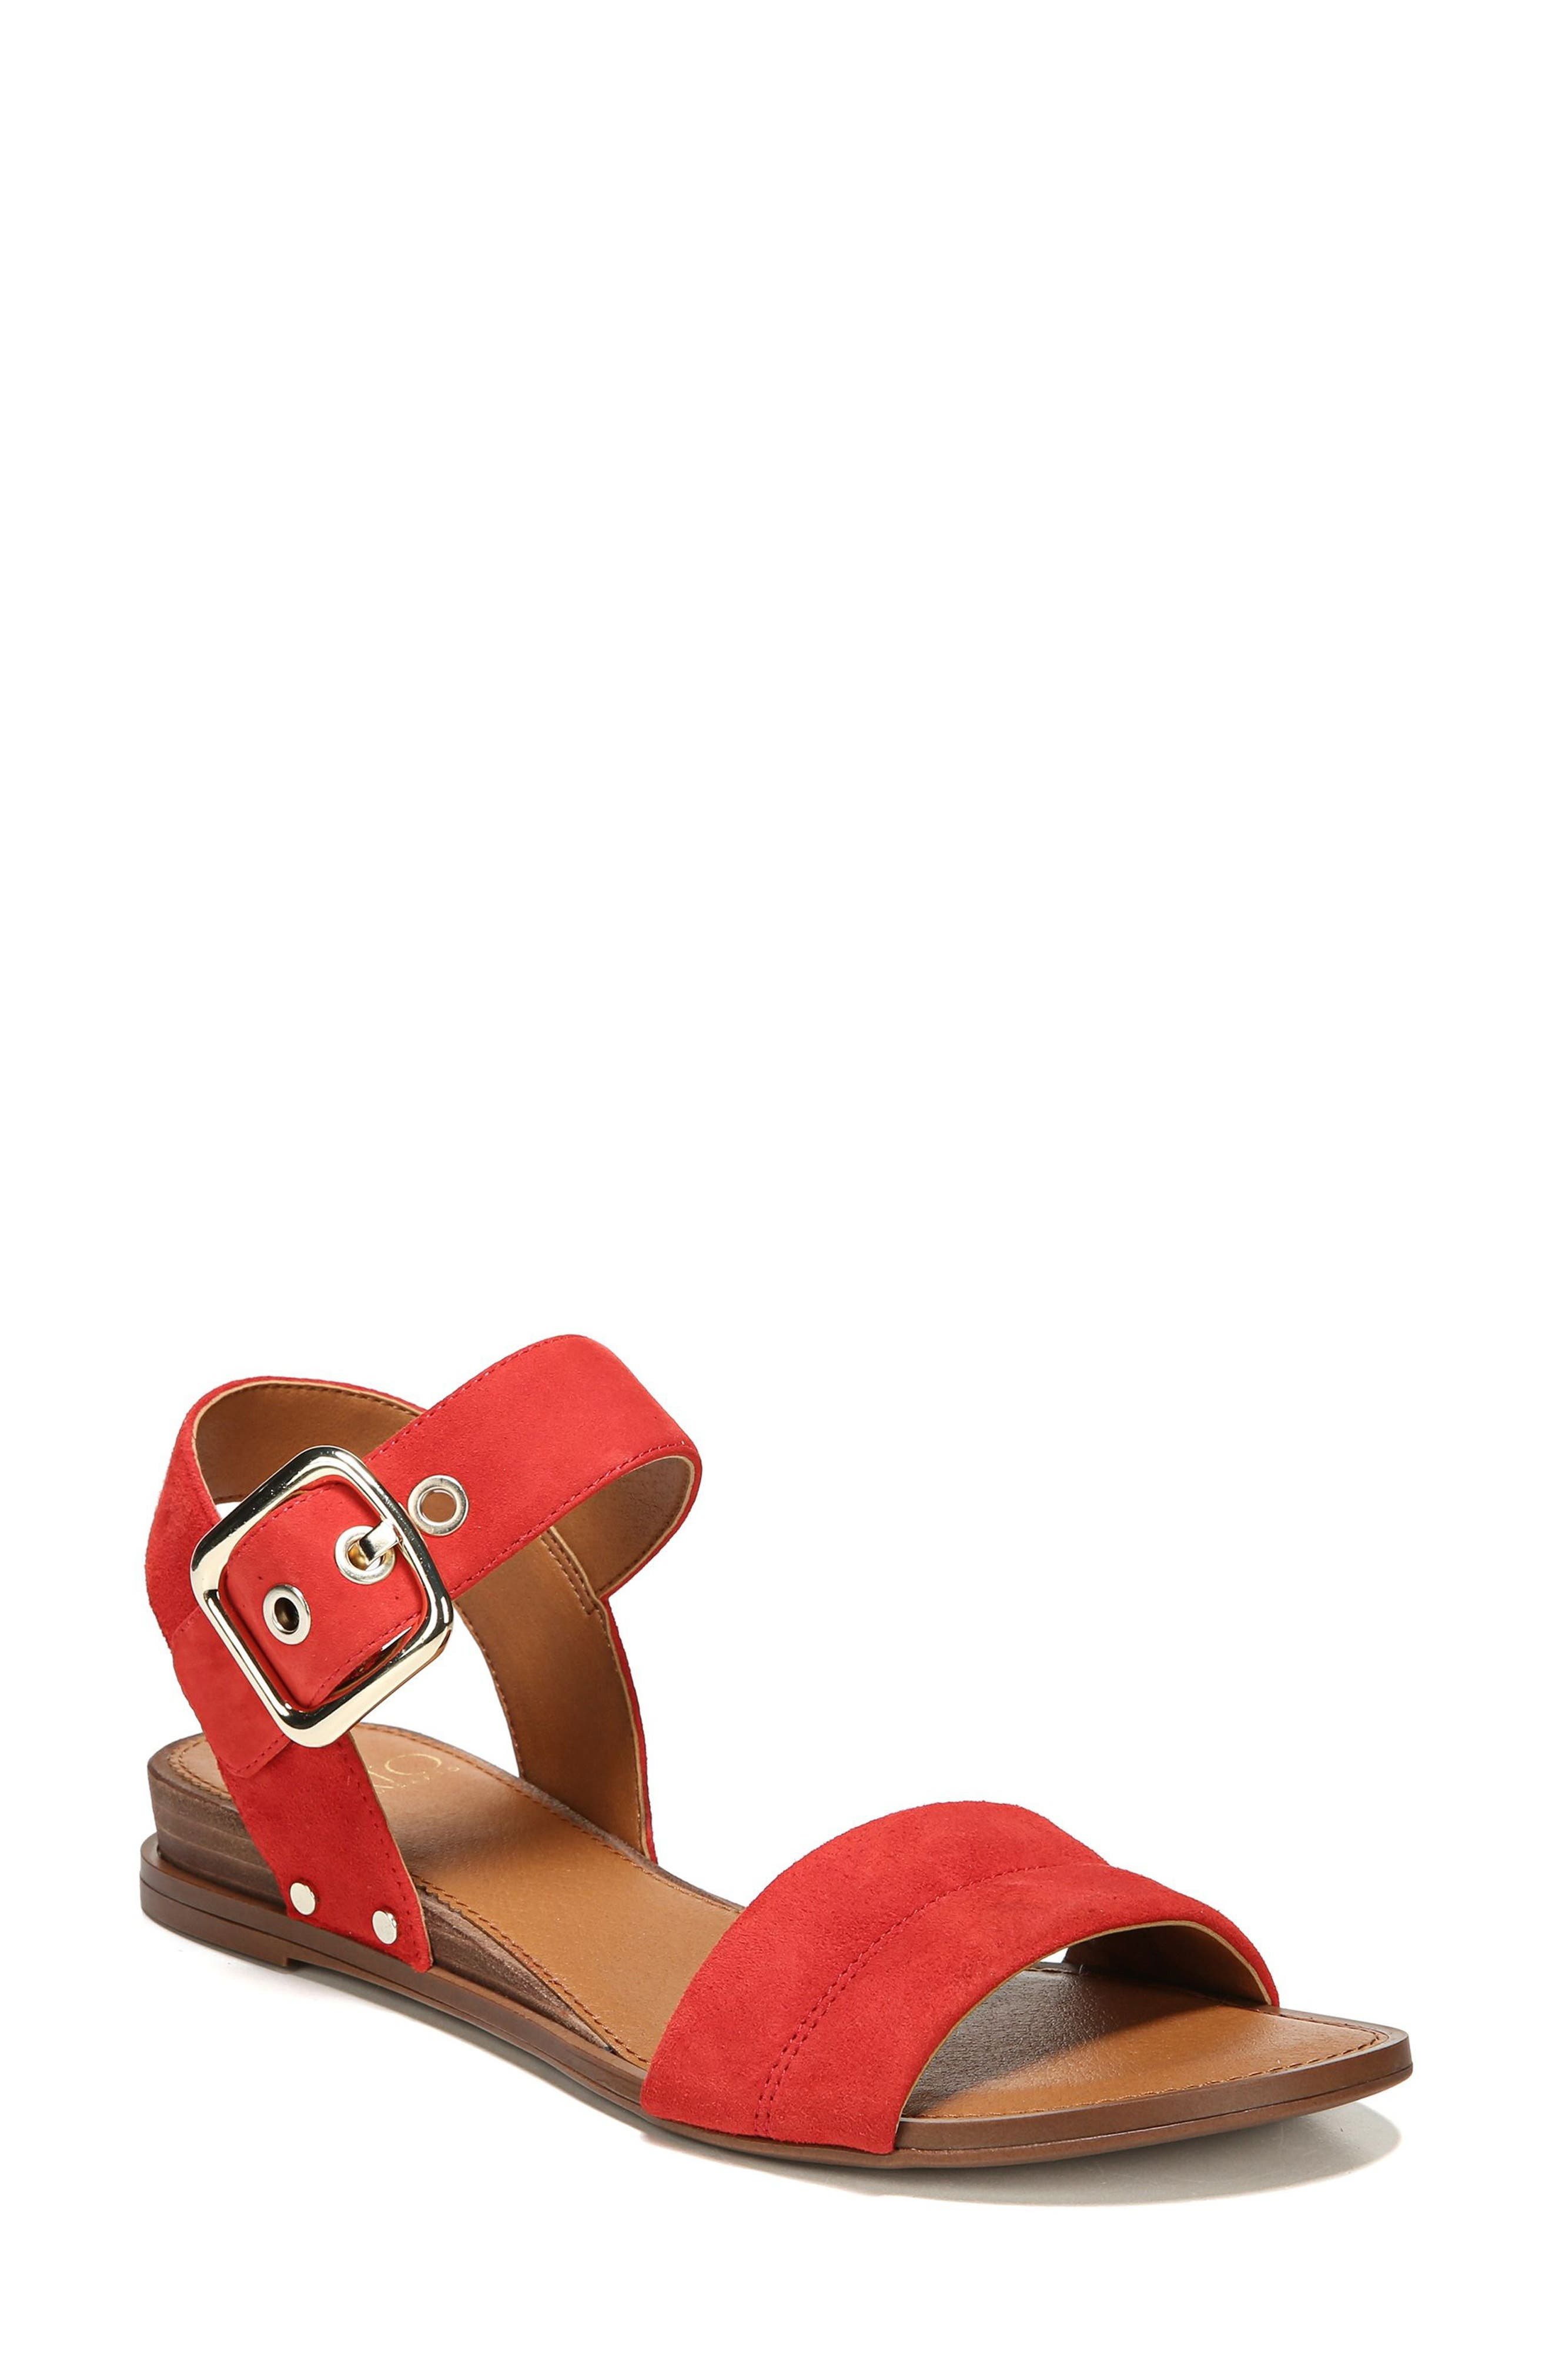 Patterson Low Wedge Sandal,                         Main,                         color, Pop Red Suede